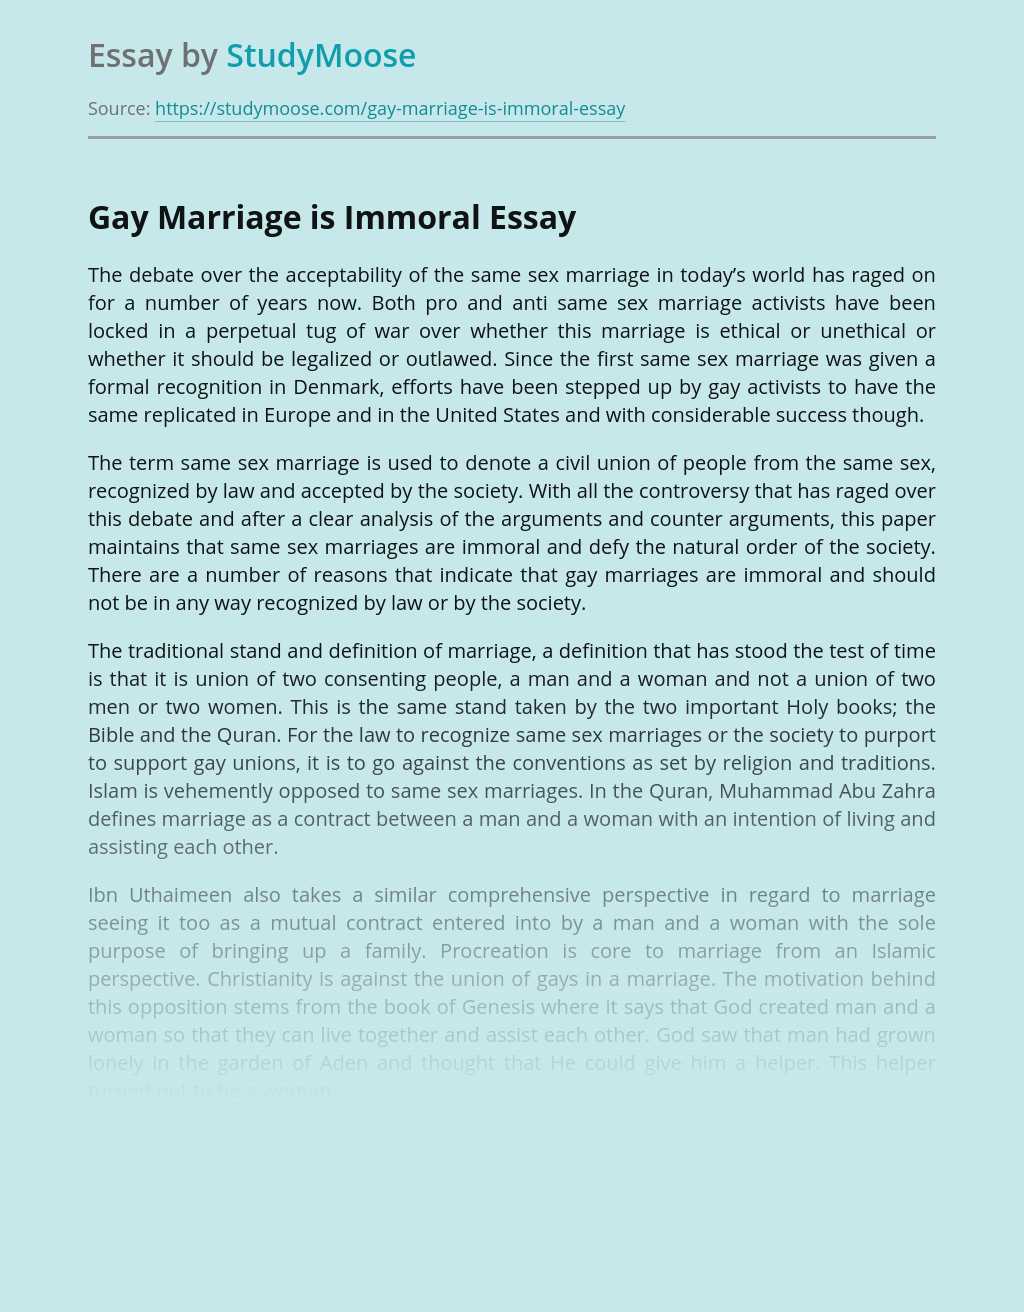 Gay Marriage is Immoral